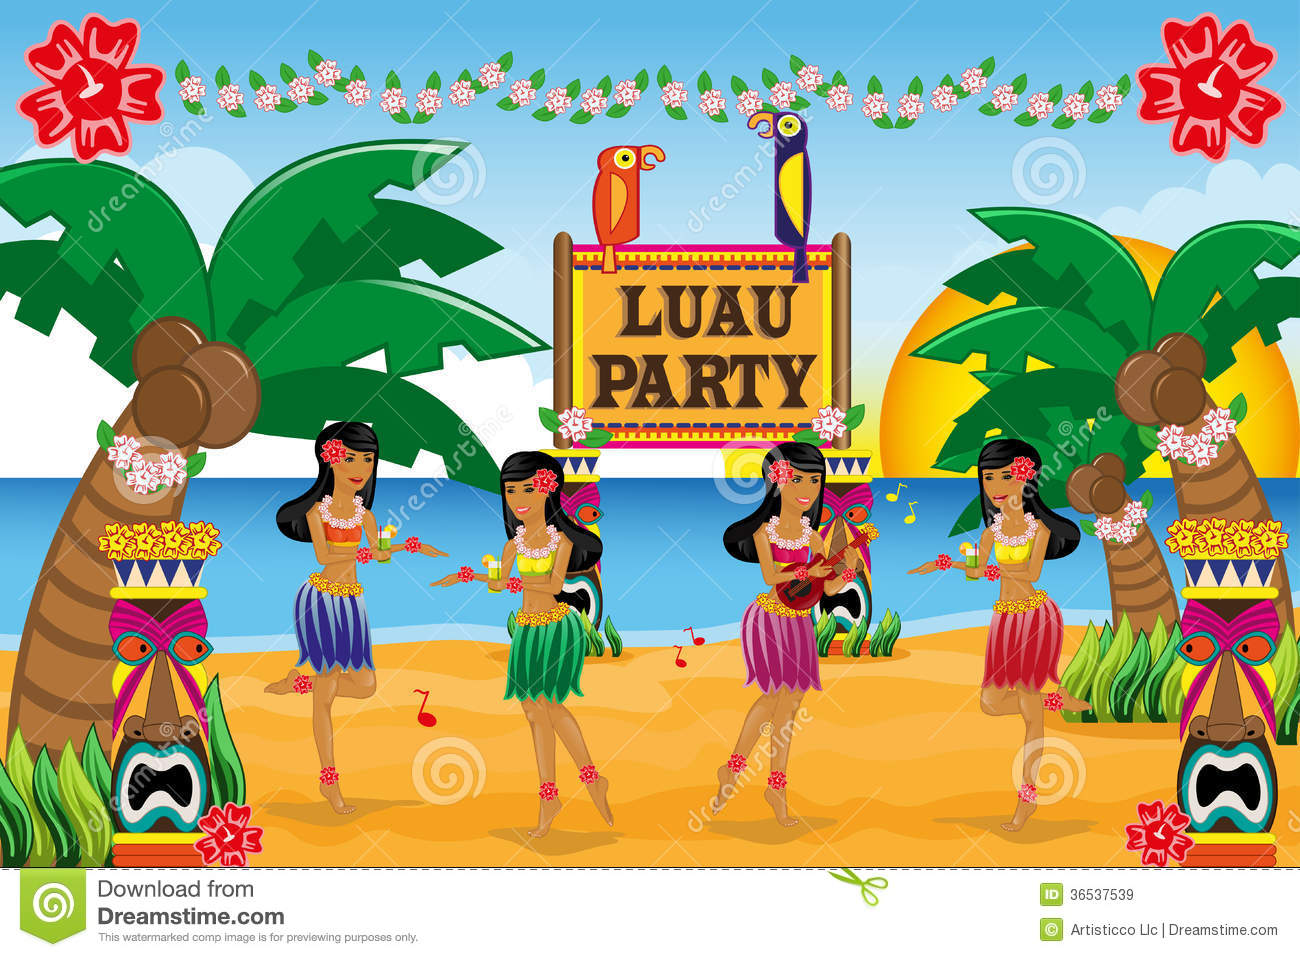 Hawaiian Luau Party Royalty Free Stock Images - Image: 36537539: https://www.dreamstime.com/royalty-free-stock-images-hawaiian-luau...